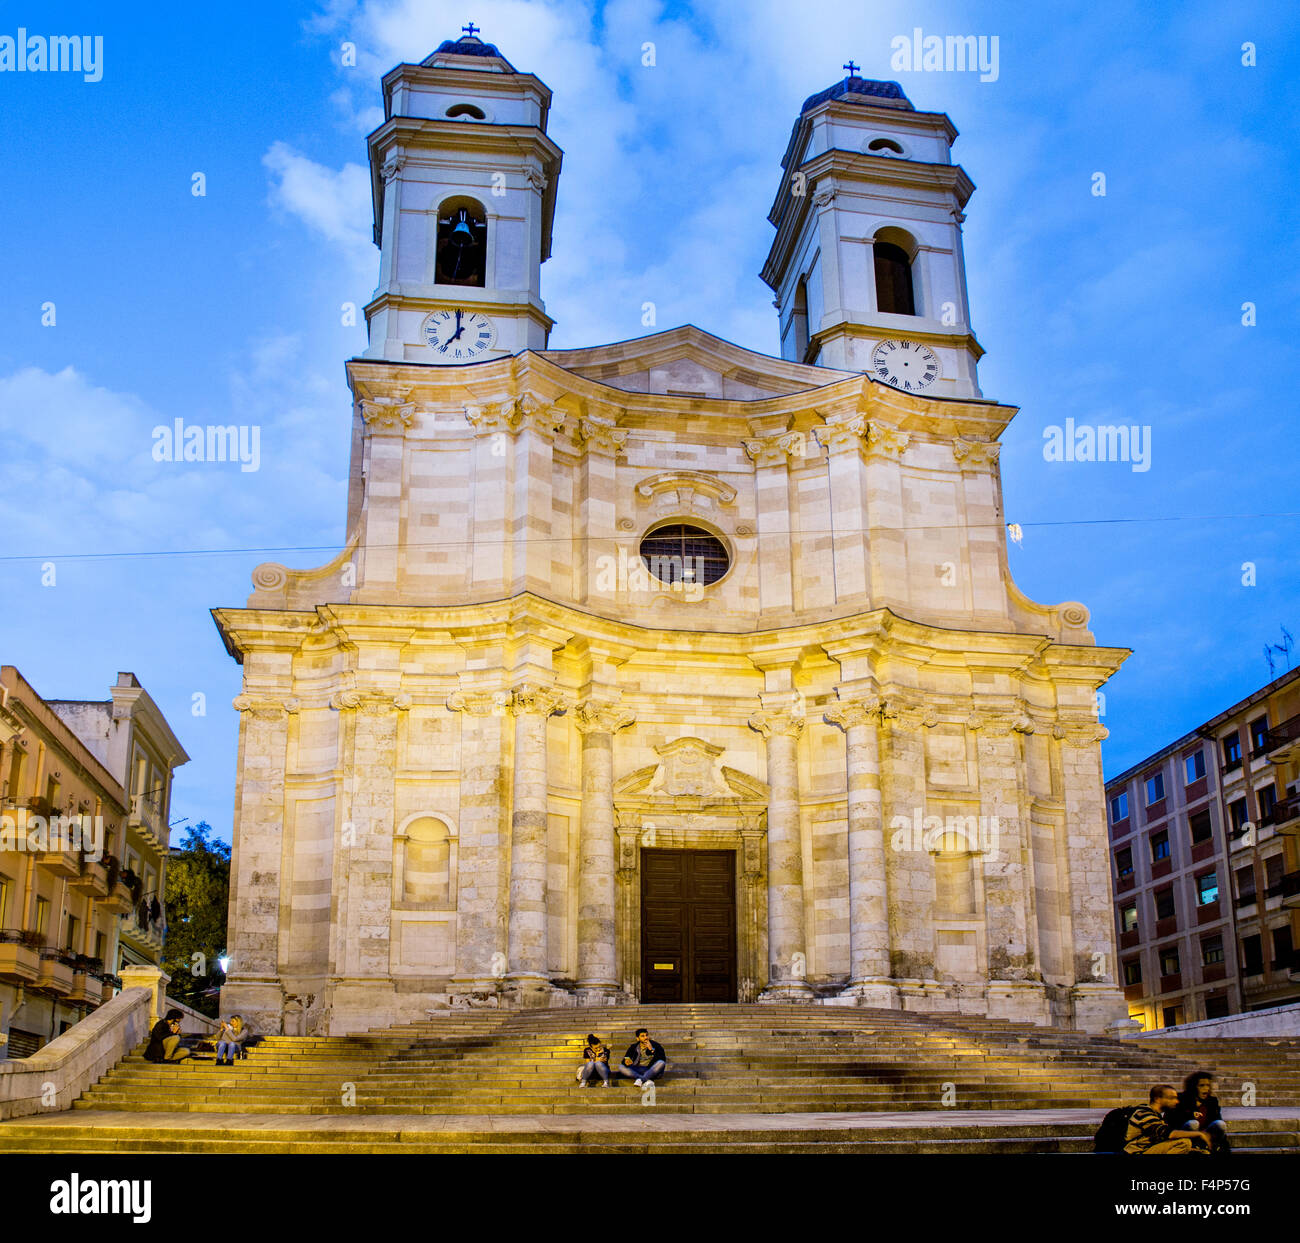 Chiesa Sant Anna Cagliari At Night Sardinia Italy - Stock Image